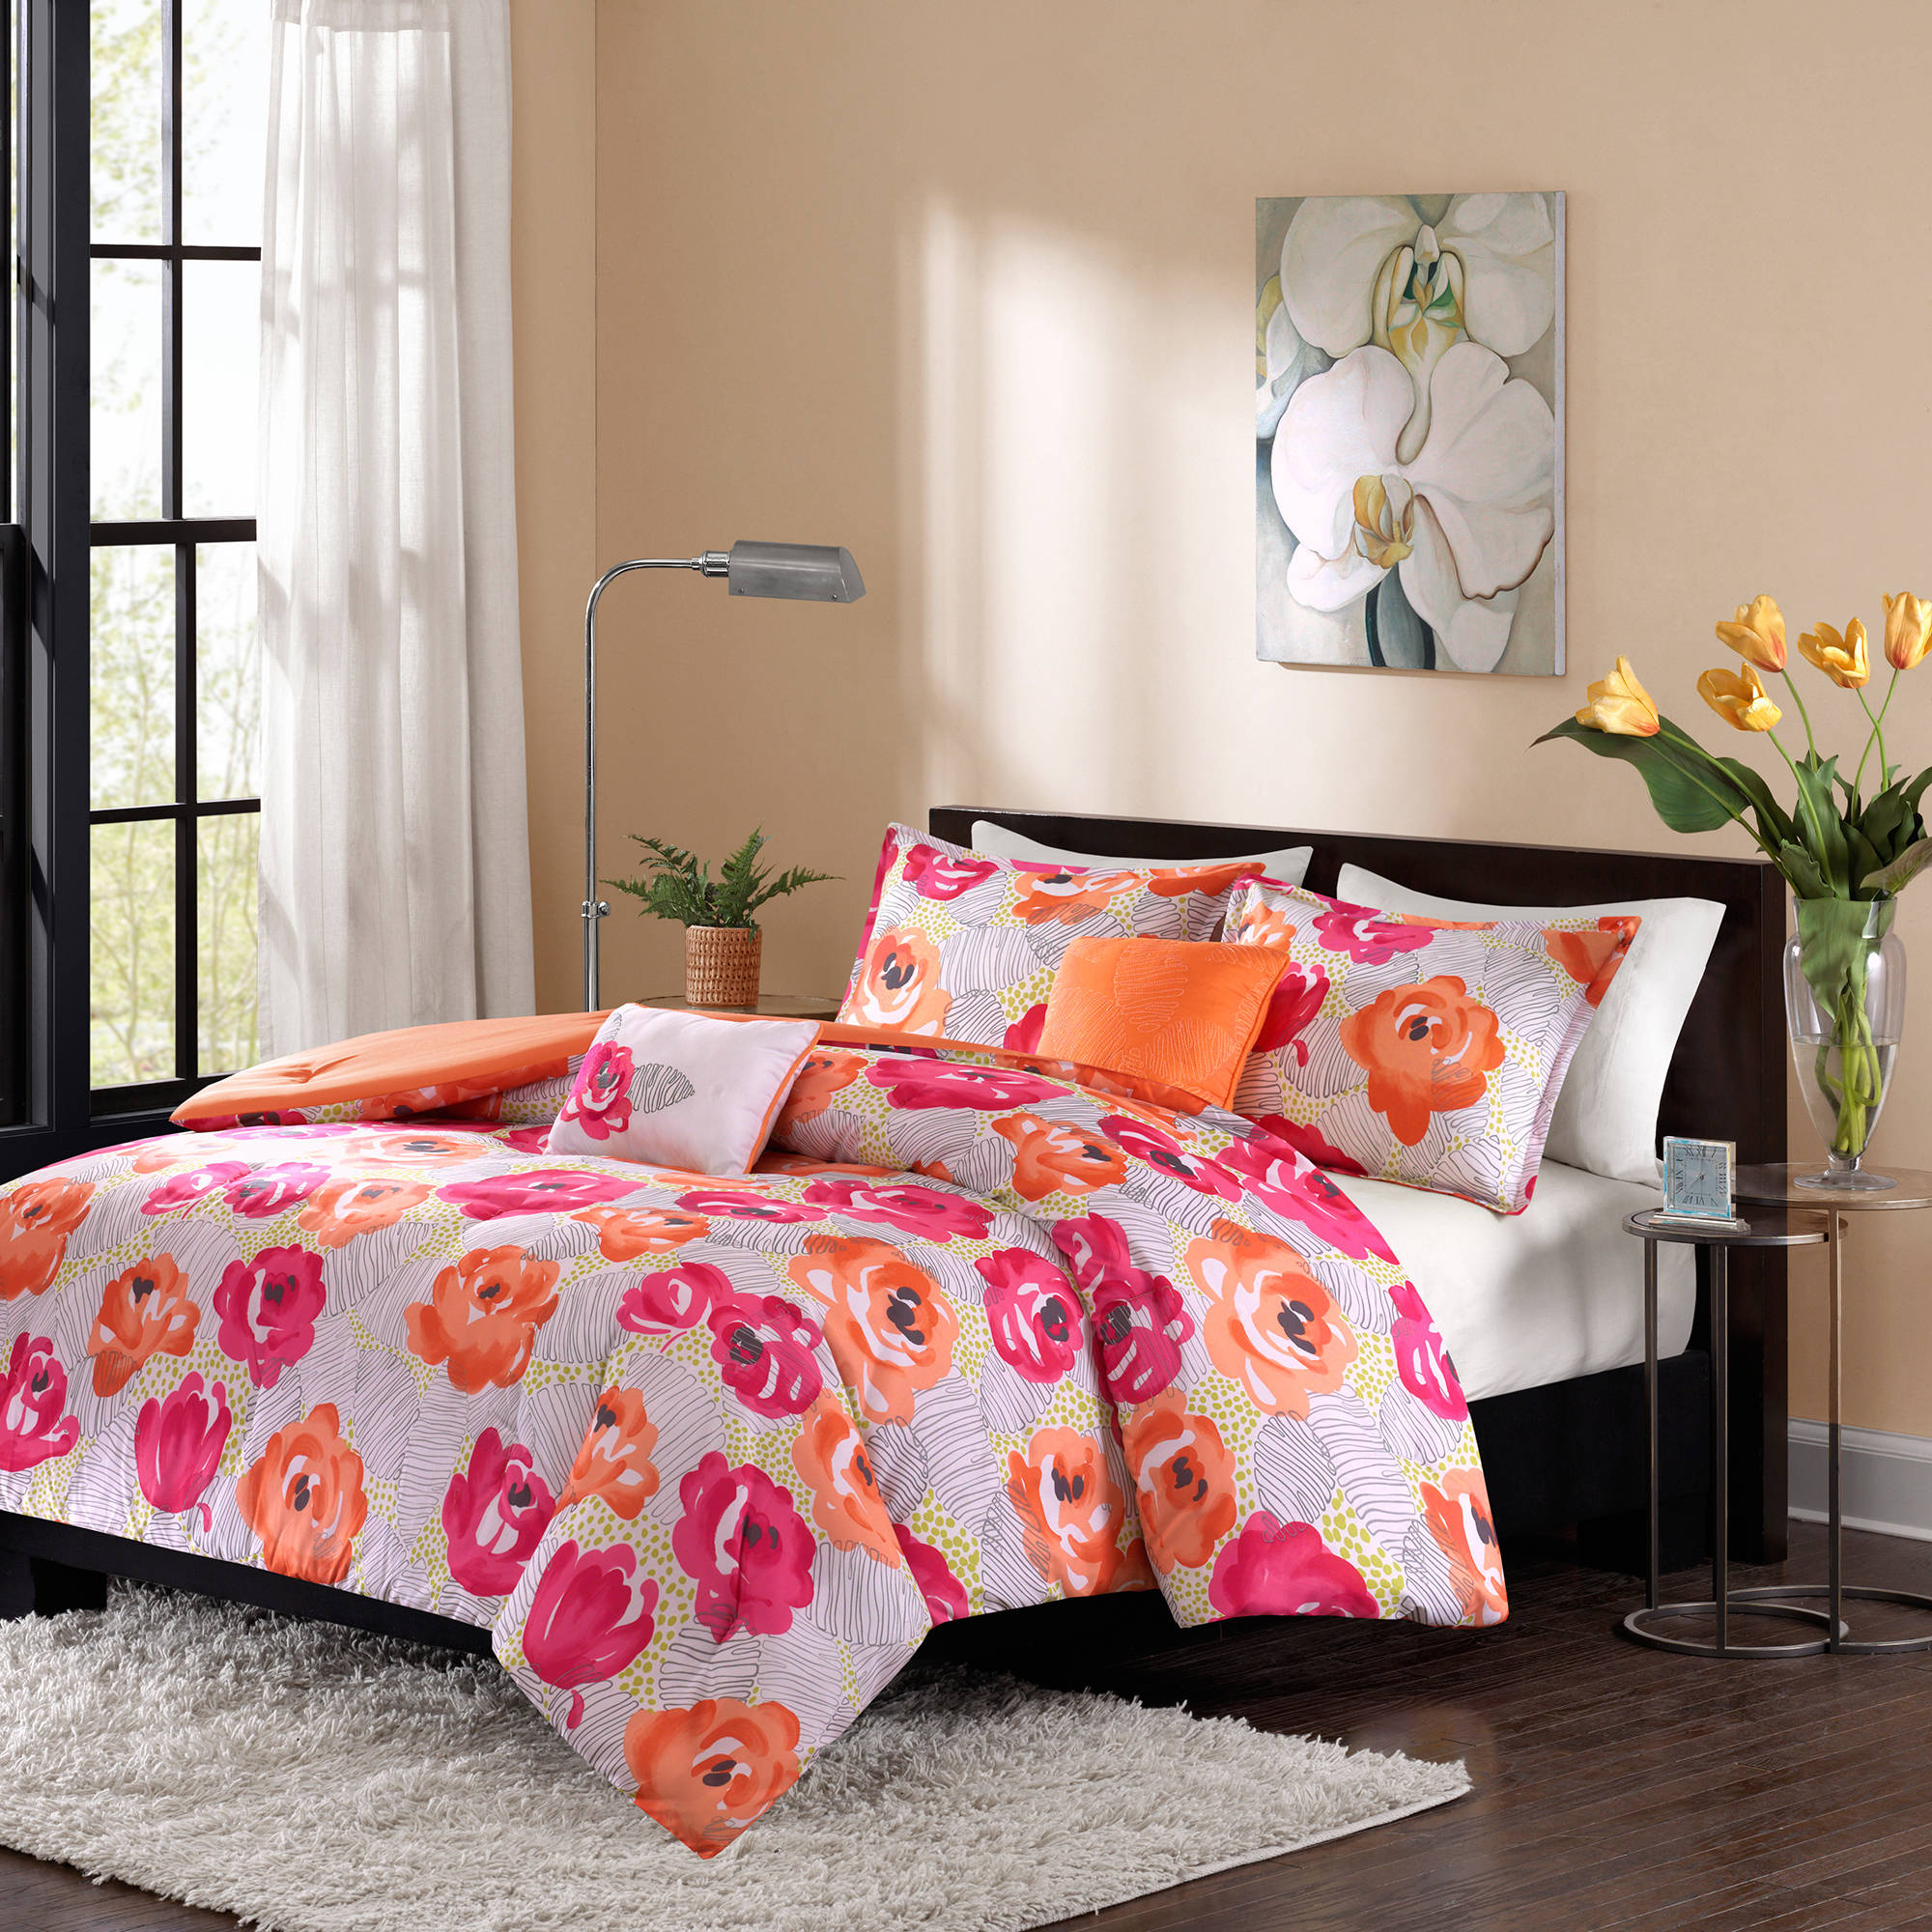 Home Essence Apartment Cici Comforter Set